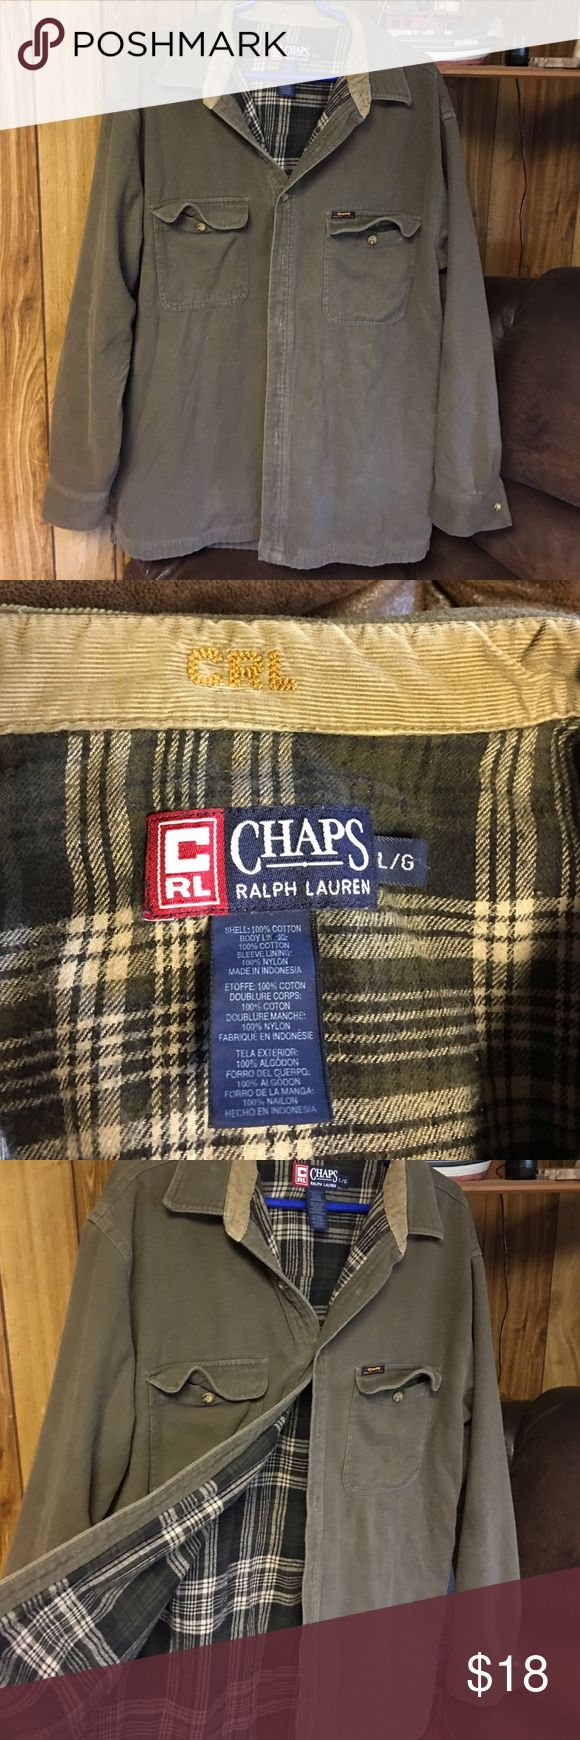 Ralph Lauren Chaps Large Men's Flannel shirt lined inside Large Ralph Laure Chaps brown outside with brown dark green and tan inside color has a tan corduroy trim 2 front button pockets great condition Ralph Lauren Shirts Casual Button Down Shirts